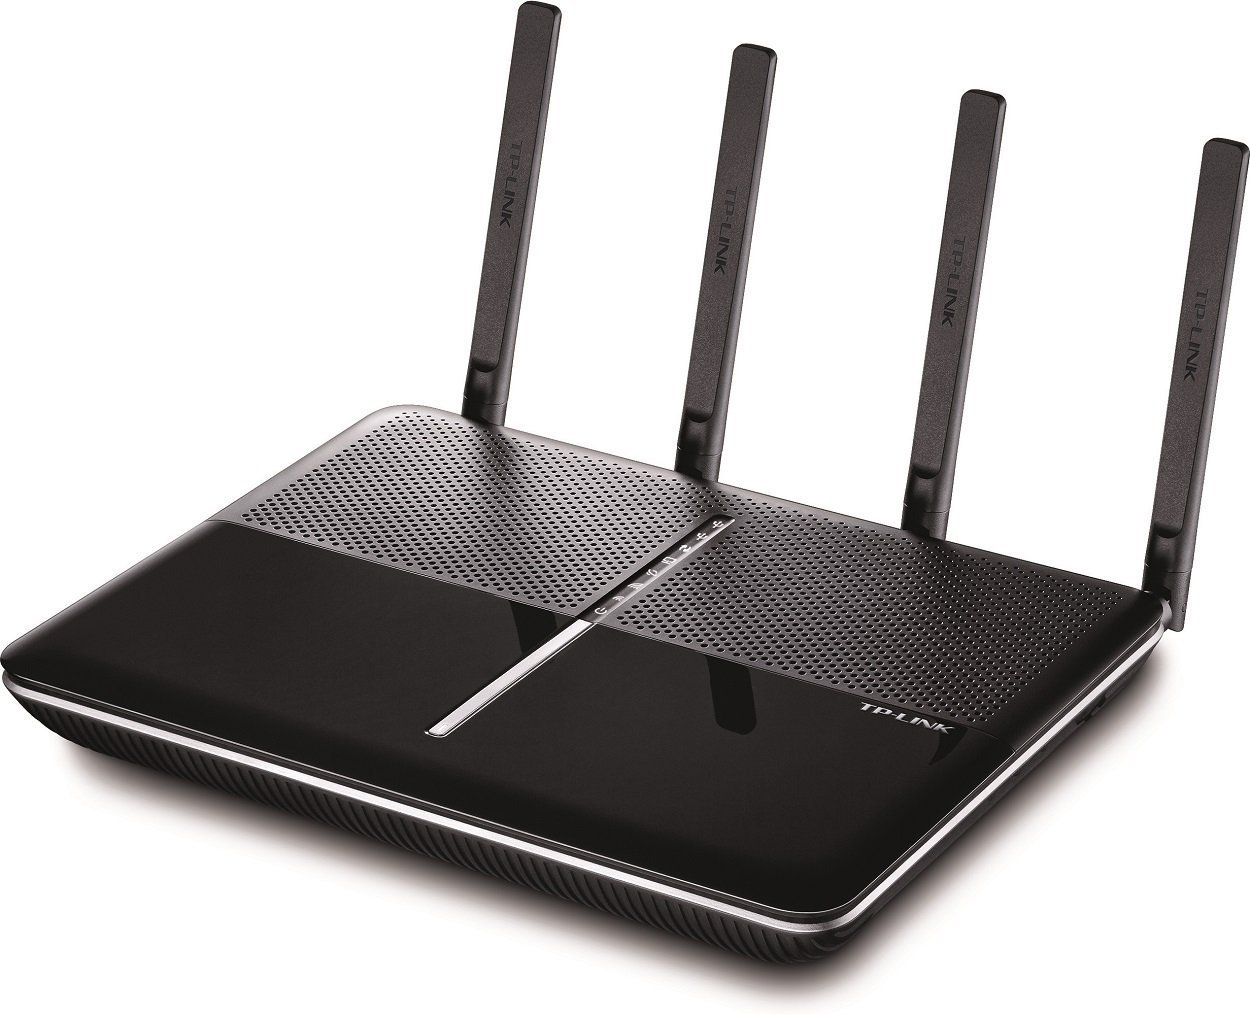 TP-Link AC2600 Wireless Wi-Fi Gigabit Router with 4-Stream Technology (Archer C2600) by TP-Link